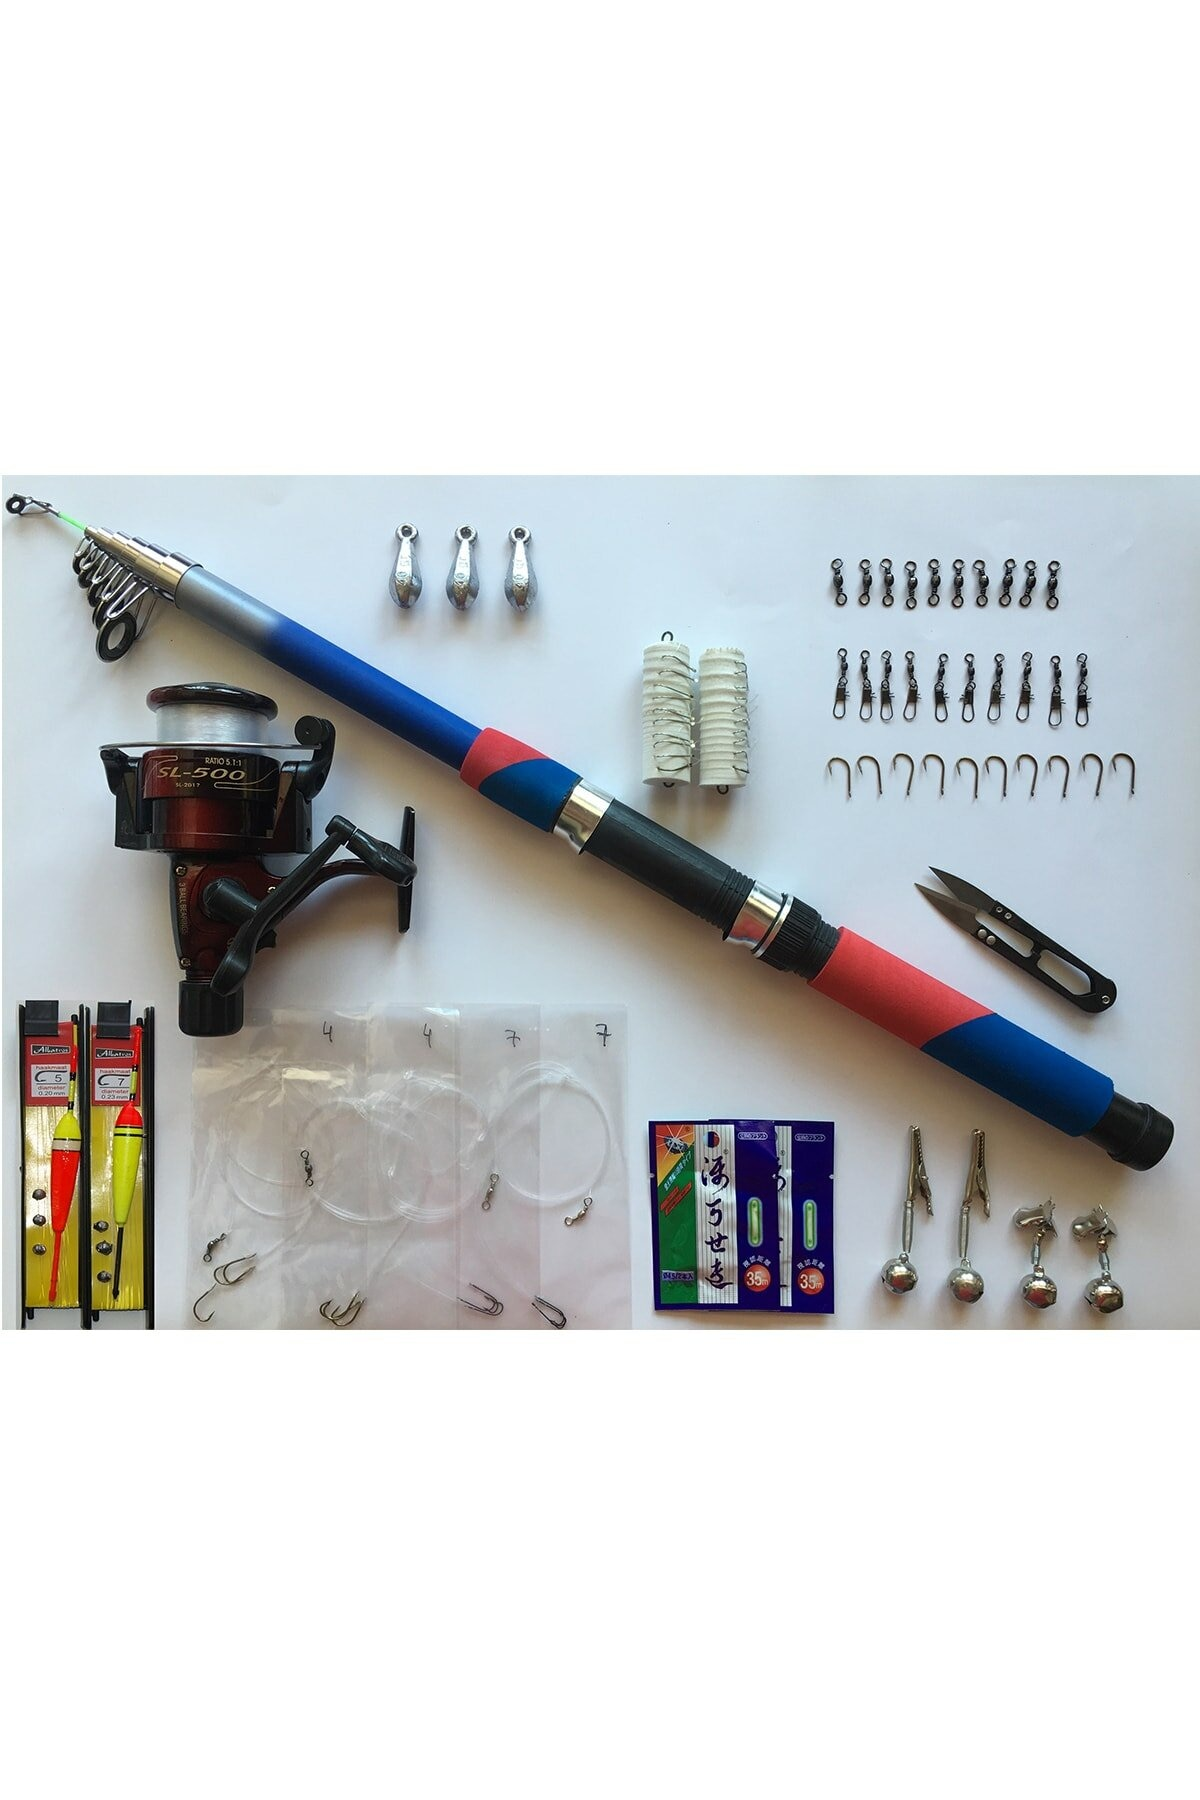 50 piece 1. Quality Fish Fishing Rod Set 2.7 Meters Cane 40 Machine 165 G Easy Portable 4 Layers Fiber enlarge